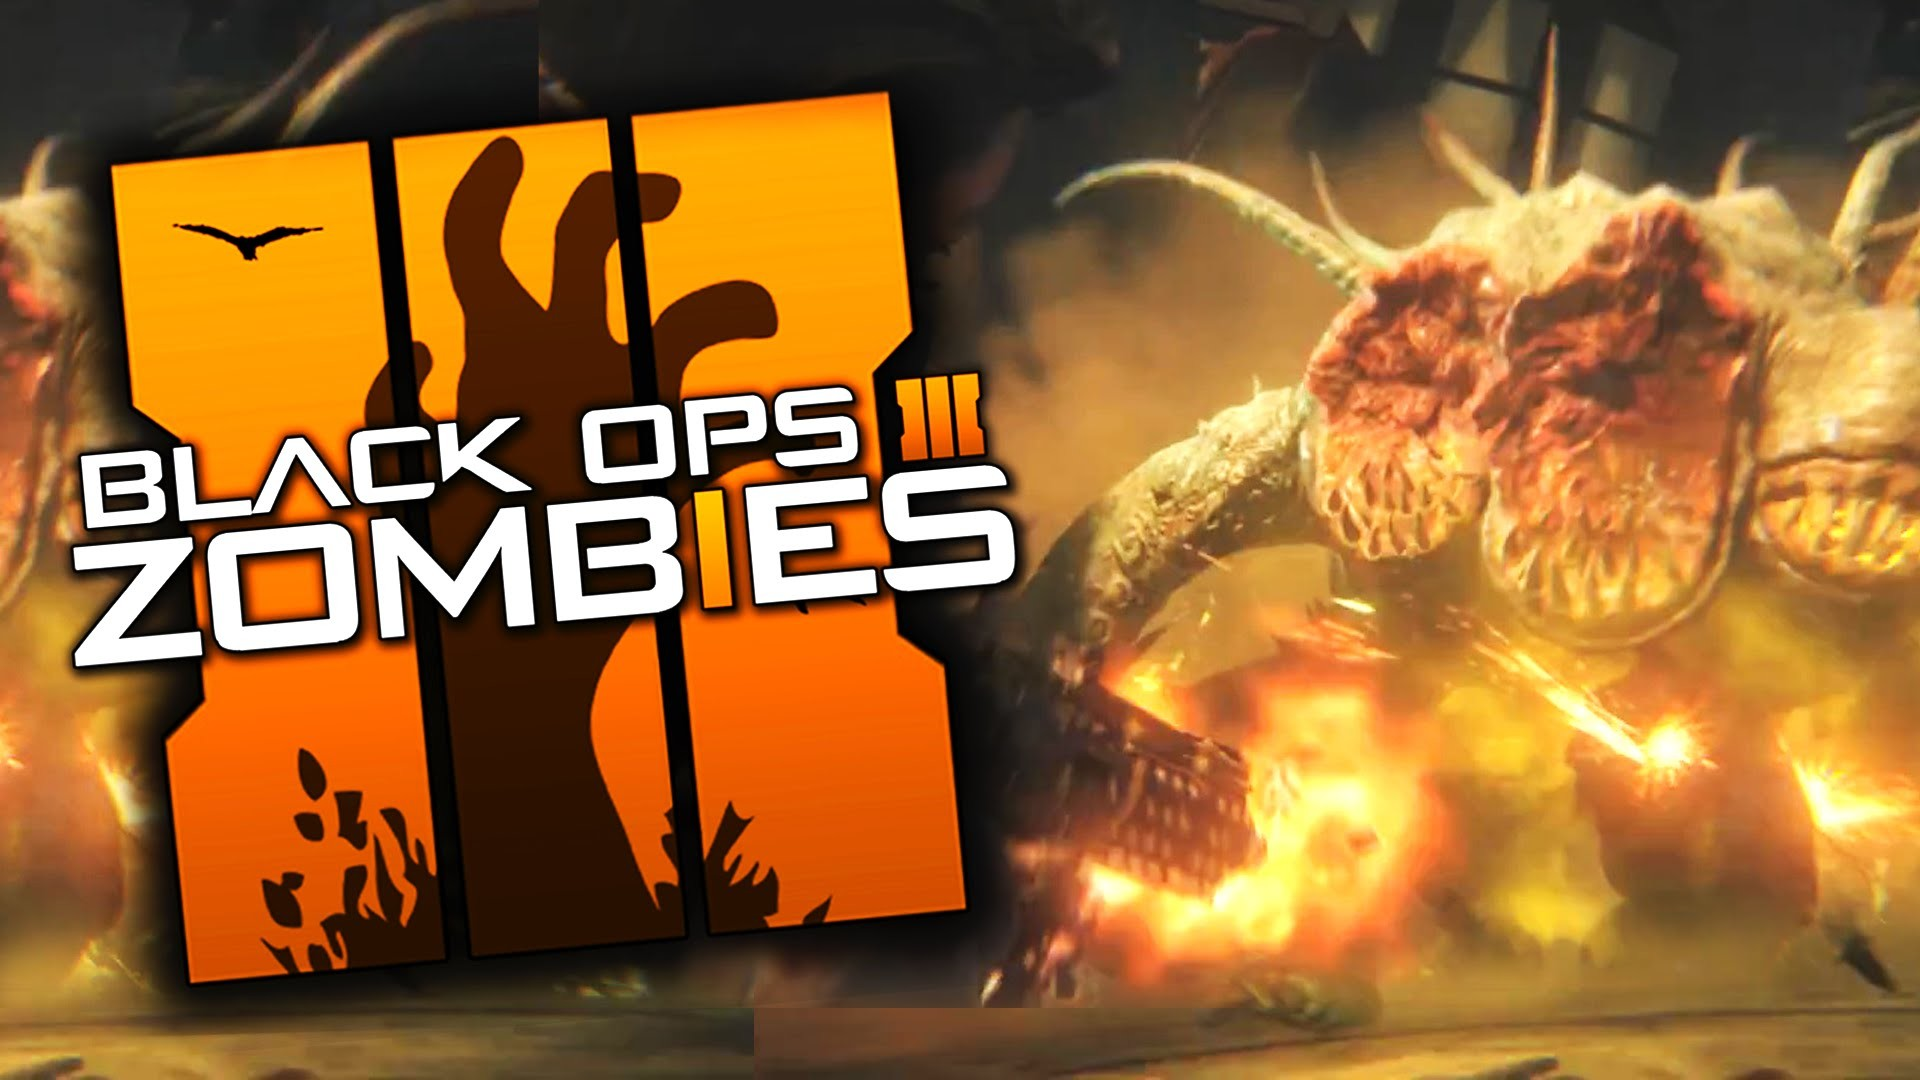 Black Ops 3 Zombies   THREE-HEADED MONSTER BOSS in Zombies (BO3 Zombies  Shadows of Evil) – YouTube